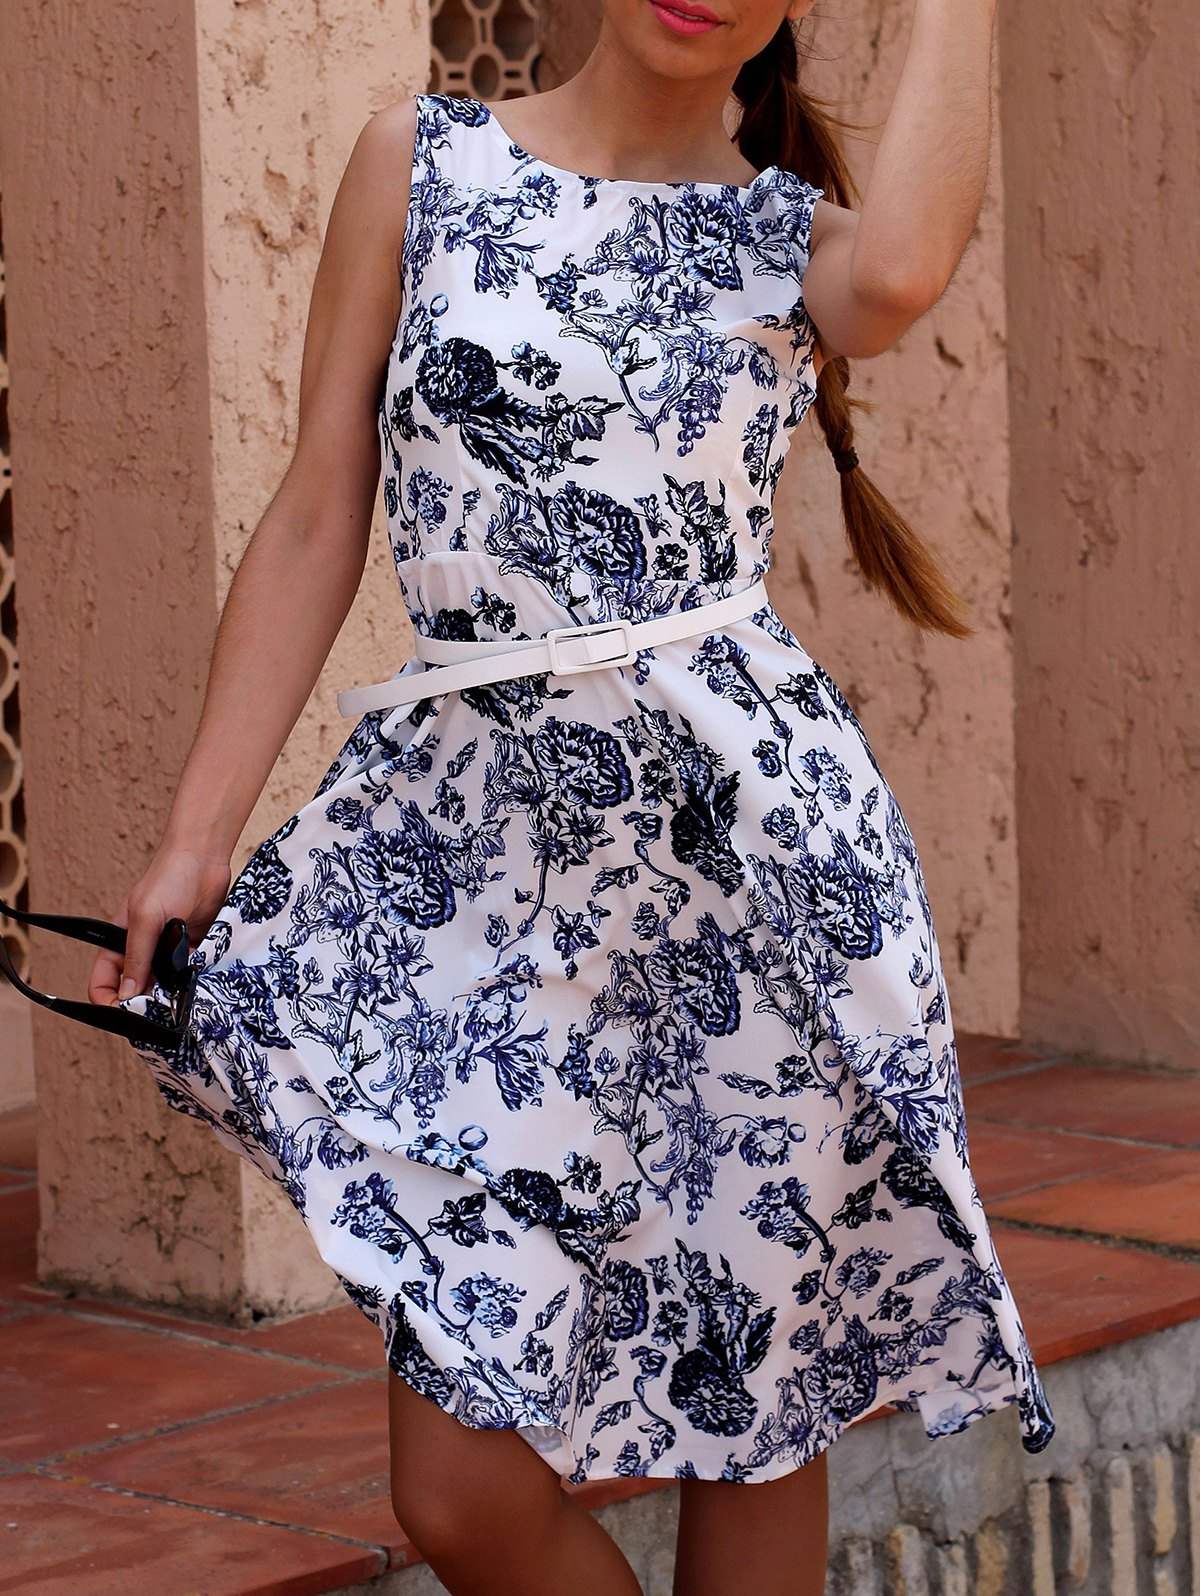 Retro Style Women's Jewel Neck Sleeveless Floral Print Belted Flare Dress - BLUE XS